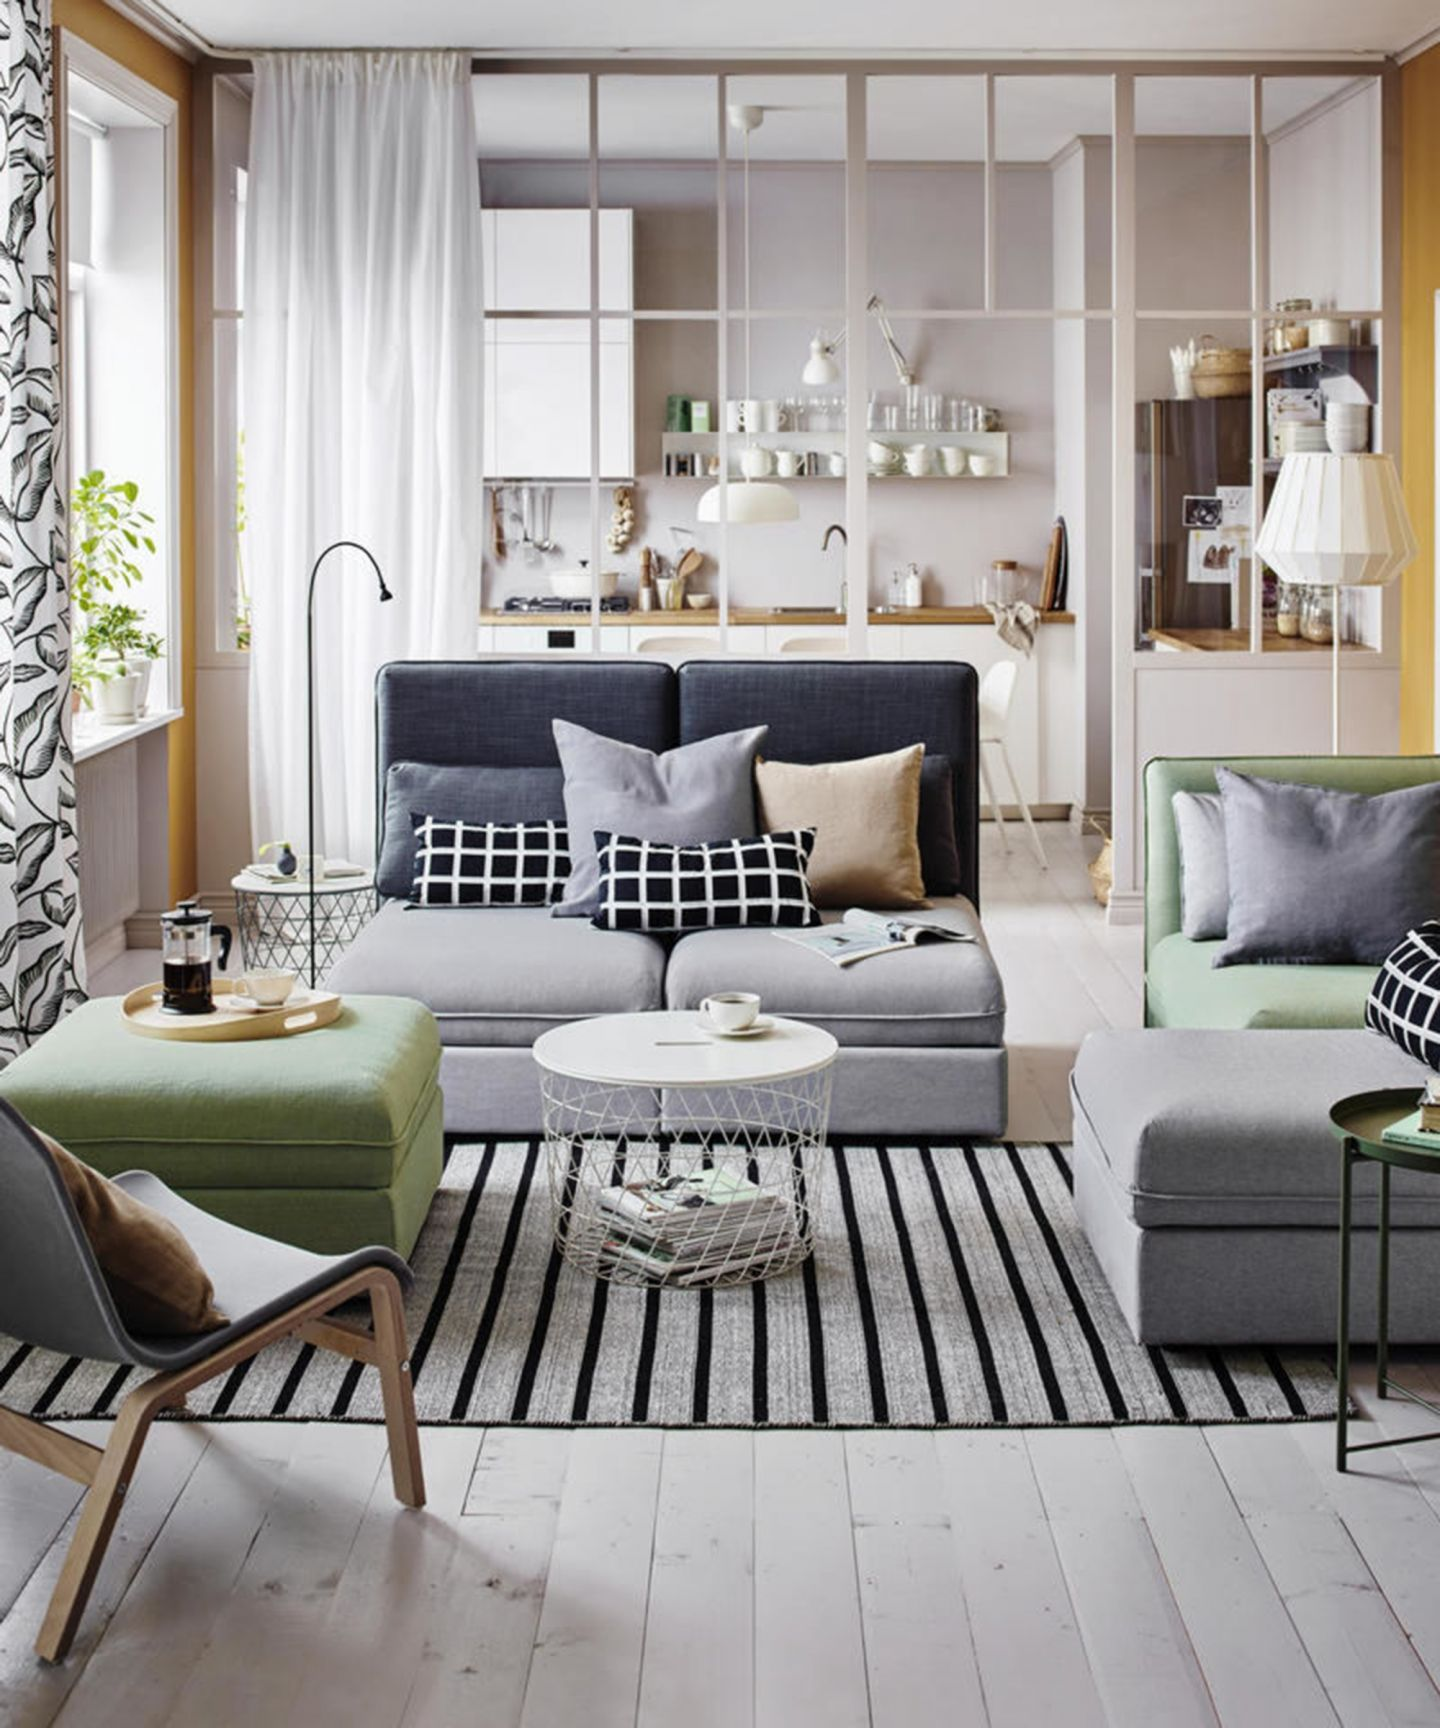 All The Home Products You Need From Ikeas 2018 Catalog In 2019